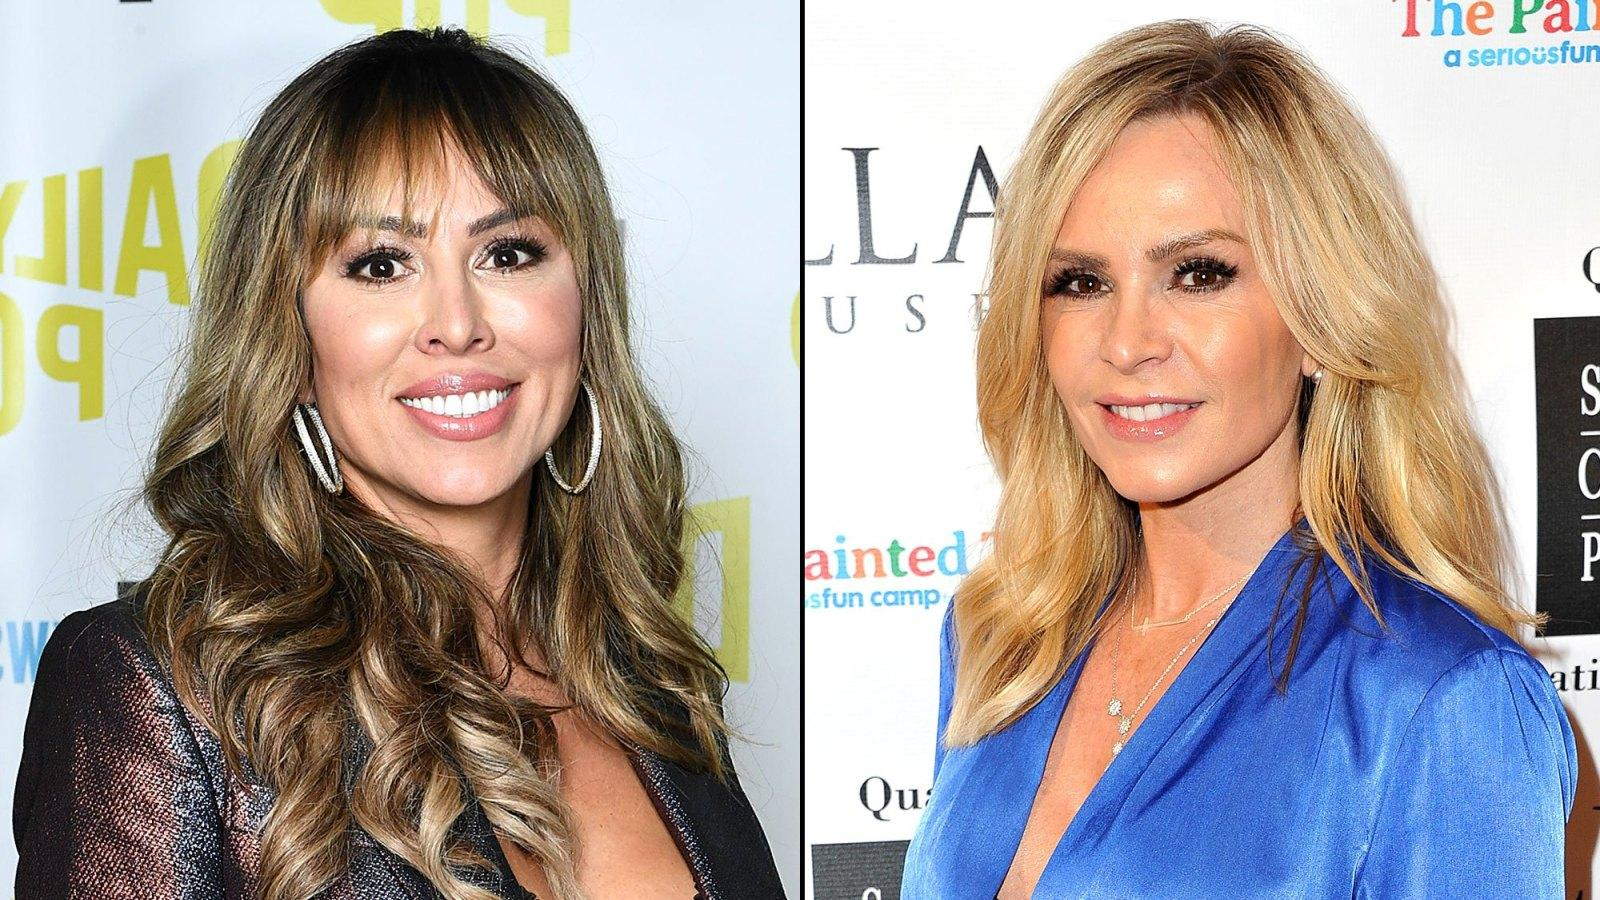 Tamra Judge Tells Kelly Dodd That At Least She Doesn't 'Date Old Men For Money' Like Her After Getting Mocked By The Other